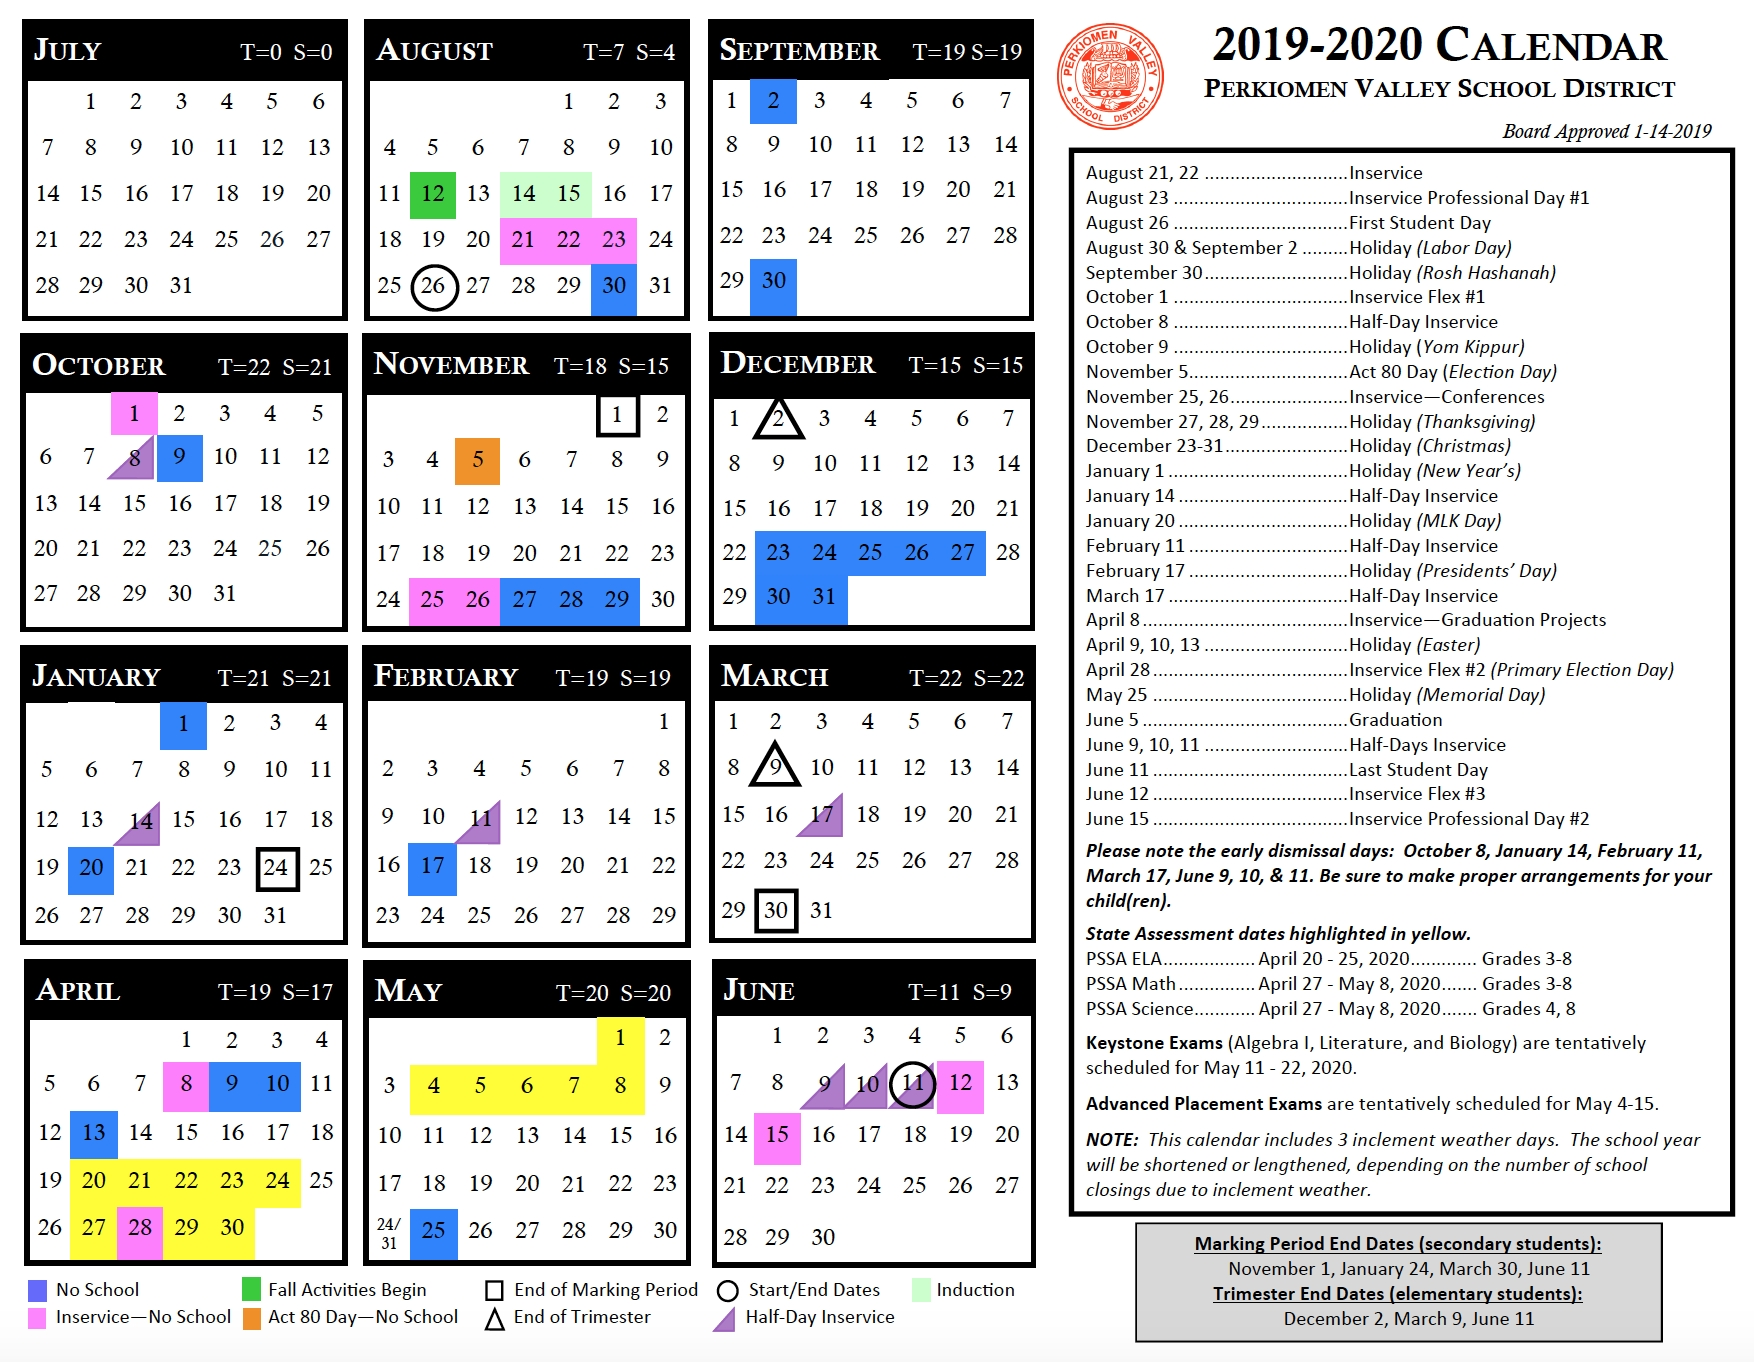 Instructional Calendar - Perkiomen Valley School District